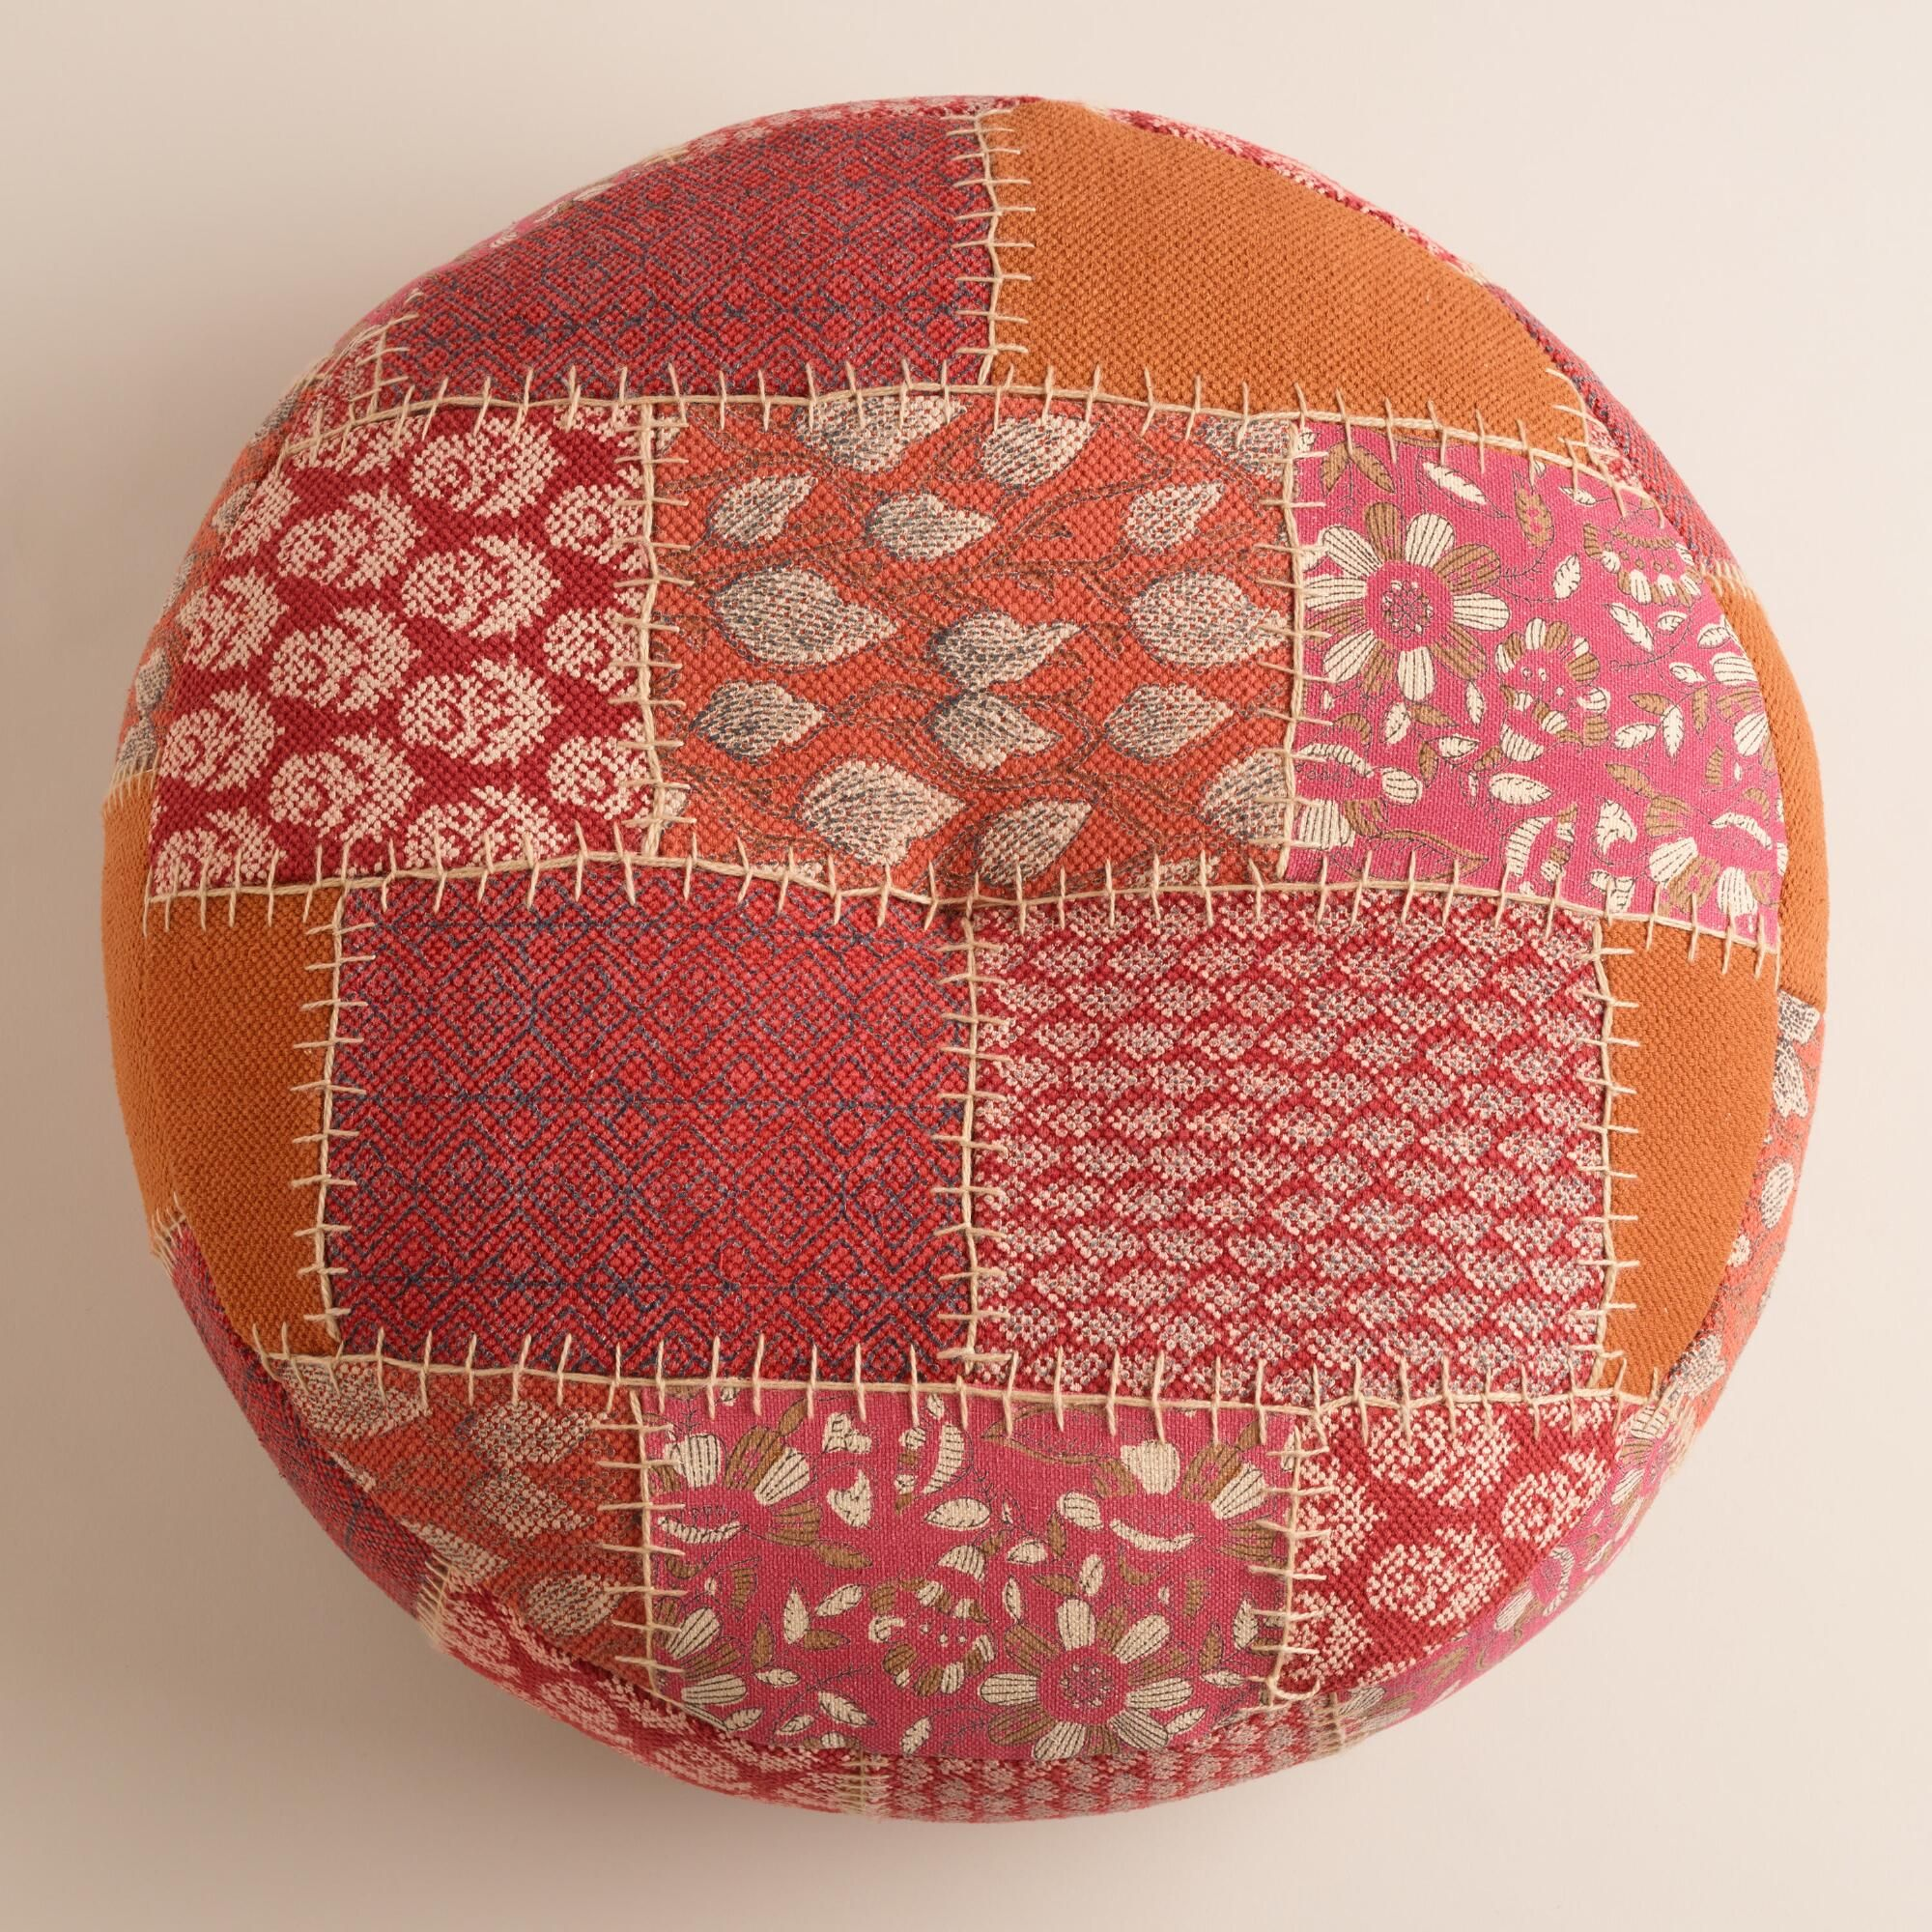 Hand stitched in india of cotton thread reclaimed from saris